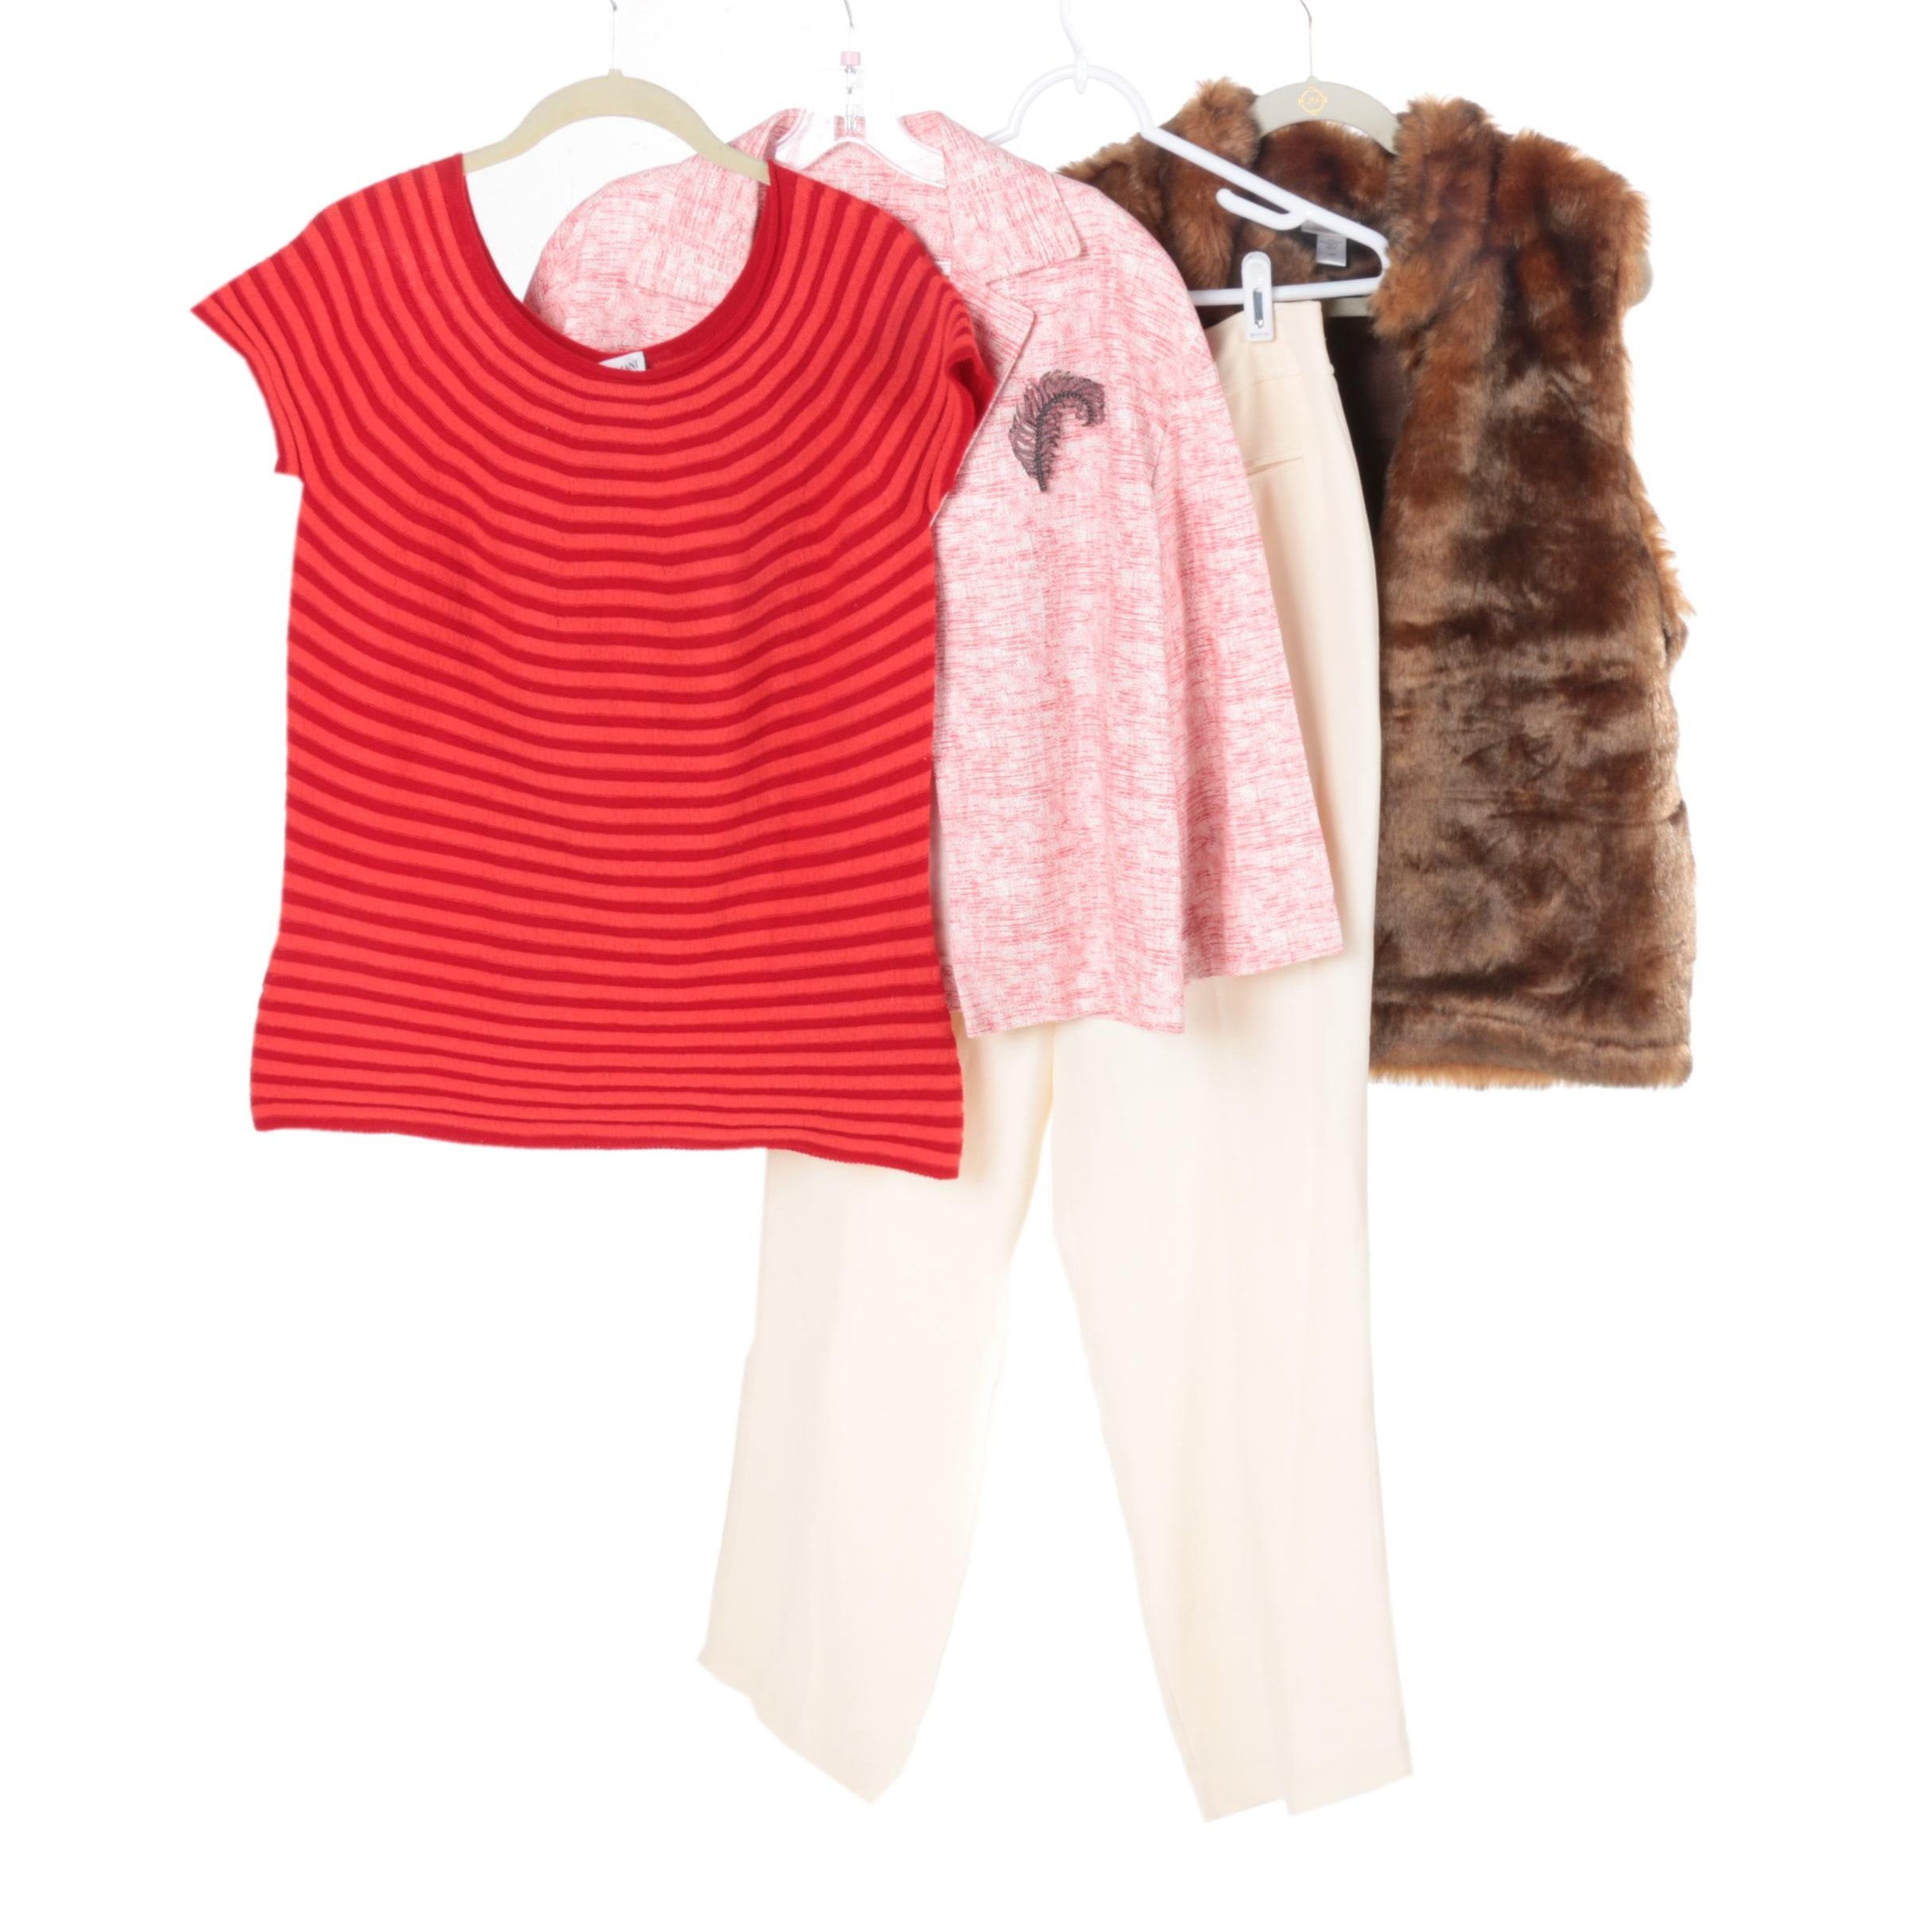 Women's Separates Including Armani and Emanuel Ungaro